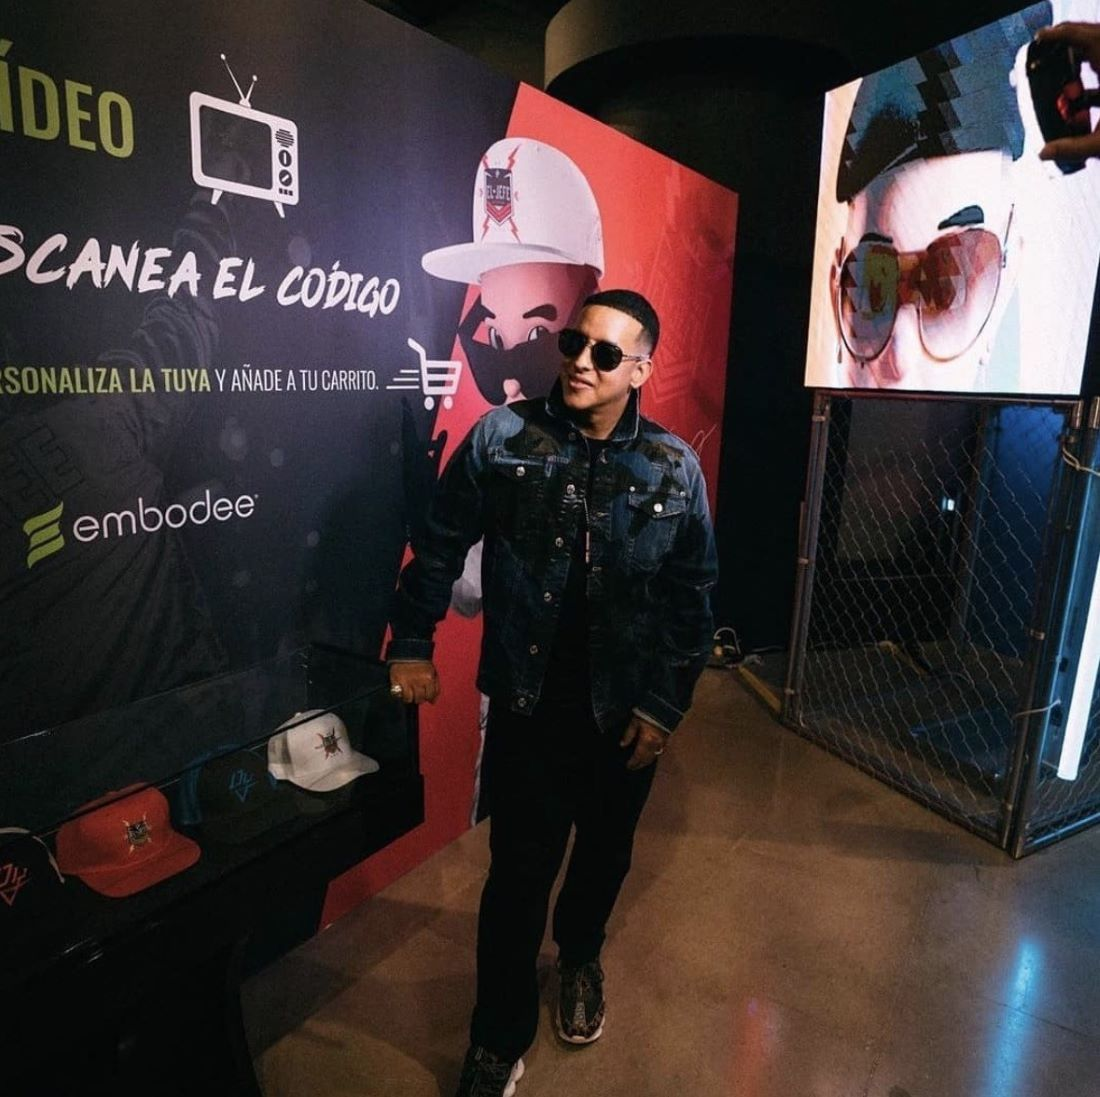 Fans of Puerto Rican chart-topper Daddy Yankee can design two styles of hats using Embodee's product virtualization technology.